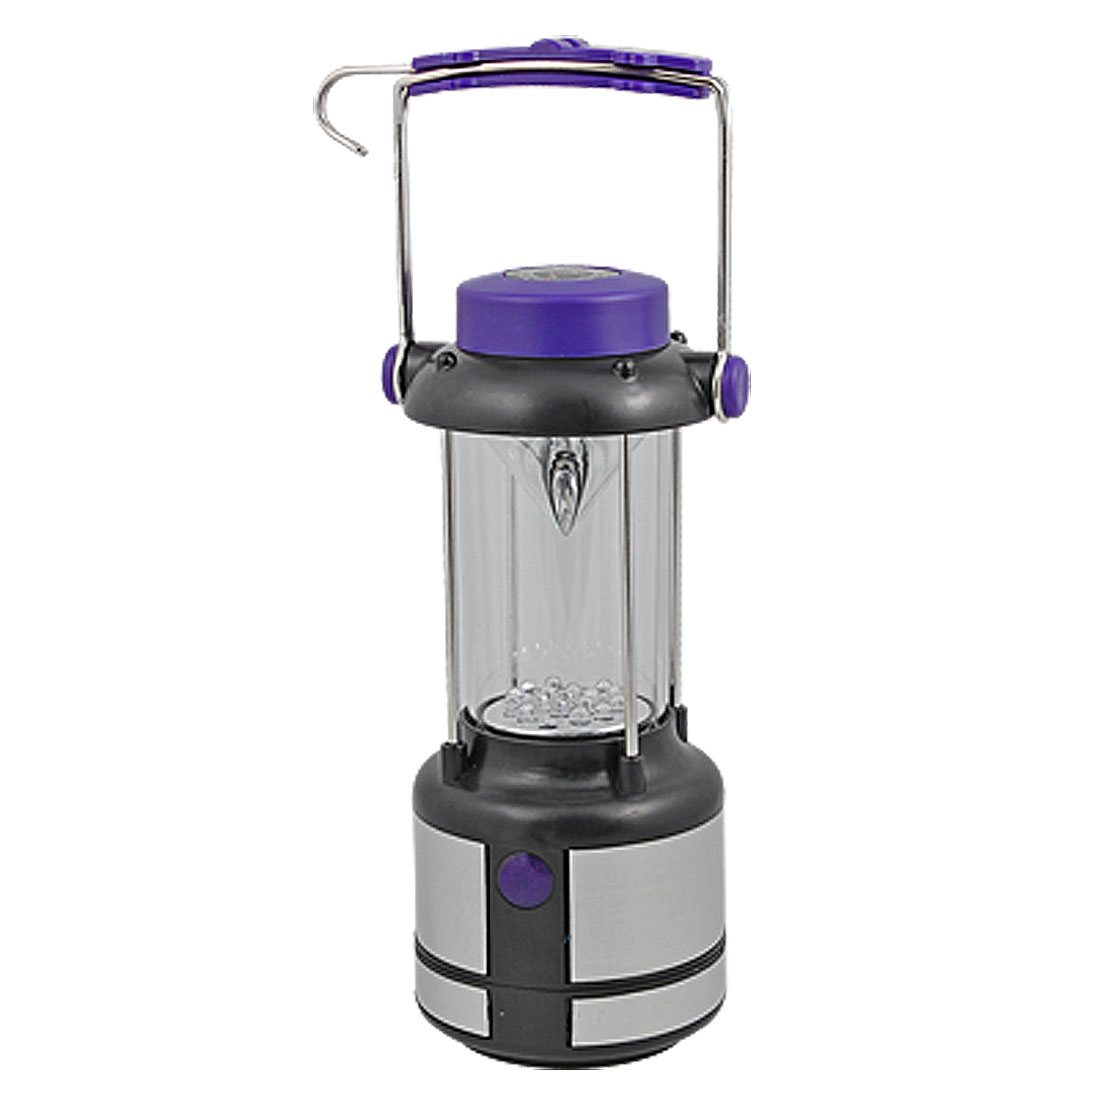 17 LED White Light Camping Hiking Lantern with Decorative Compass